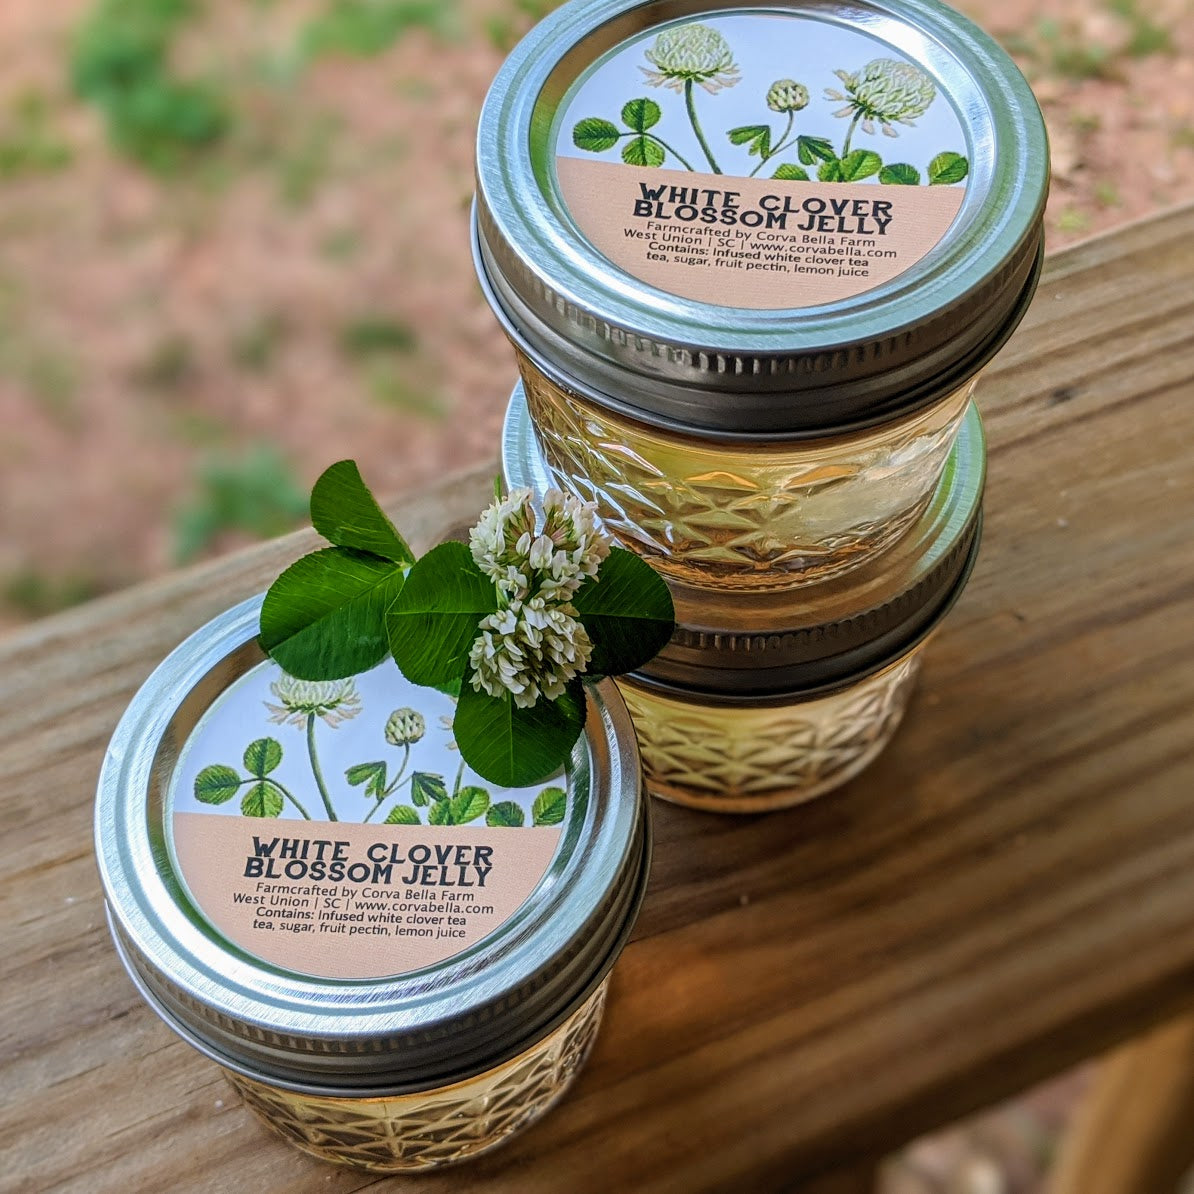 White Clover Blossom Jelly - 4 oz - Just one left!